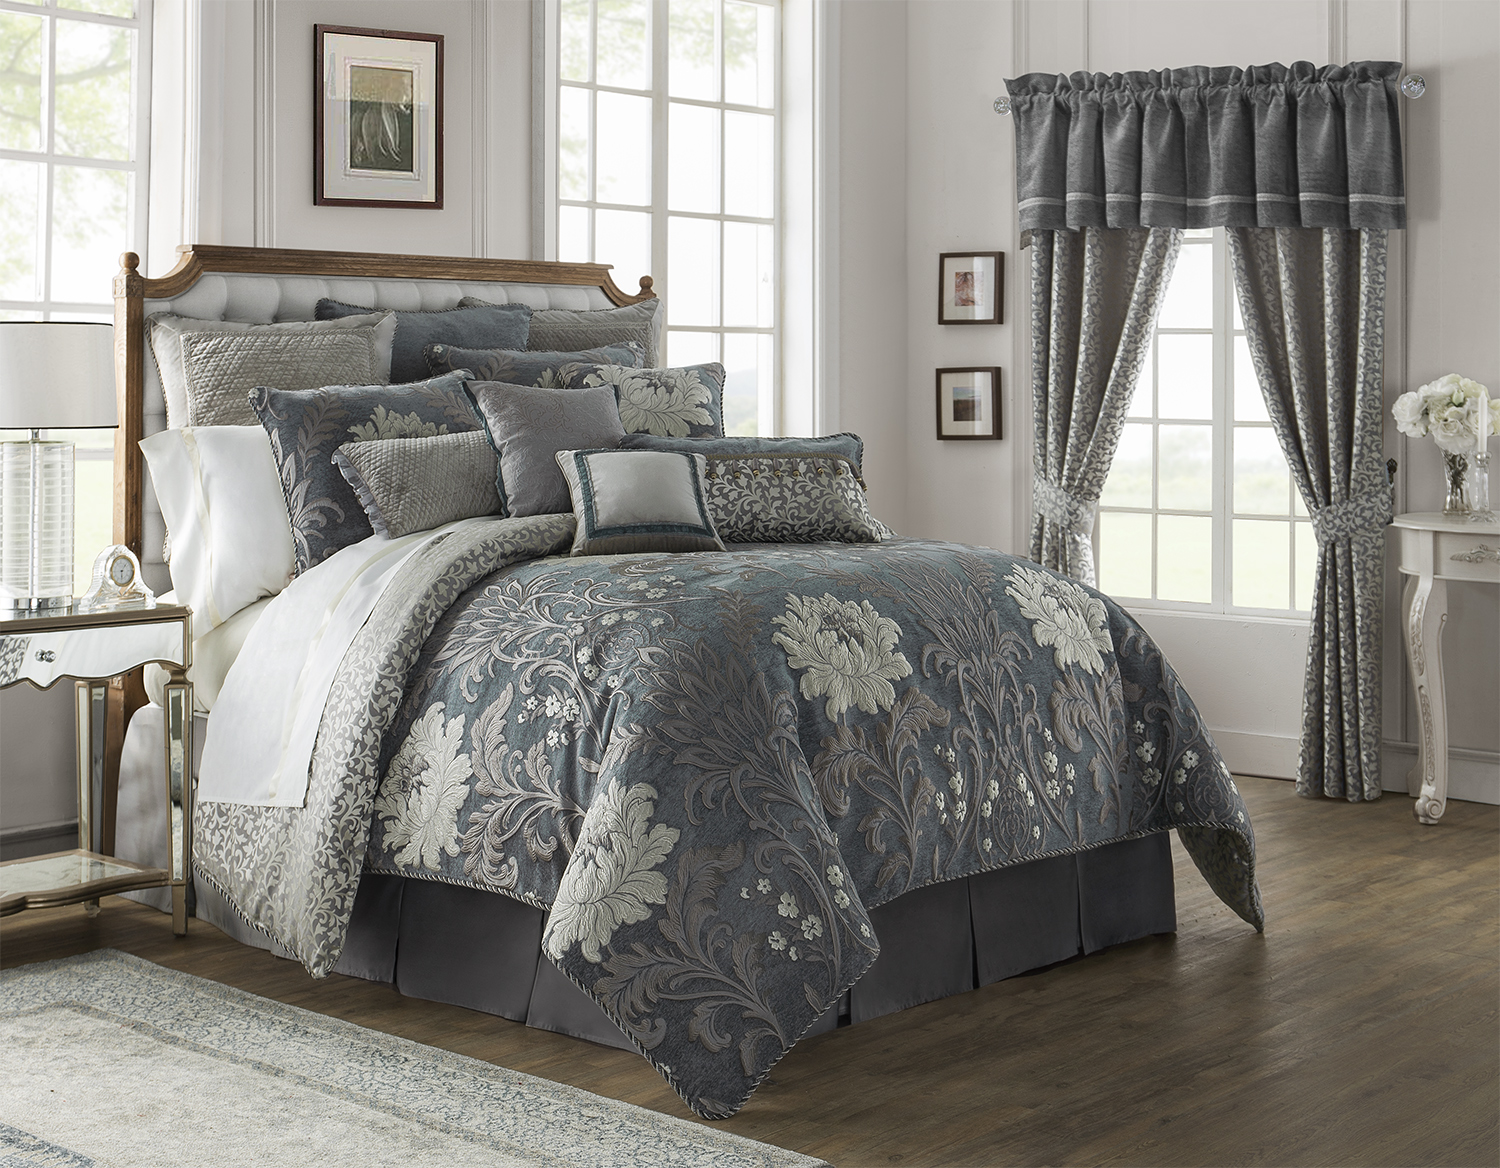 Ansonia Pewter By Waterford Luxury Bedding